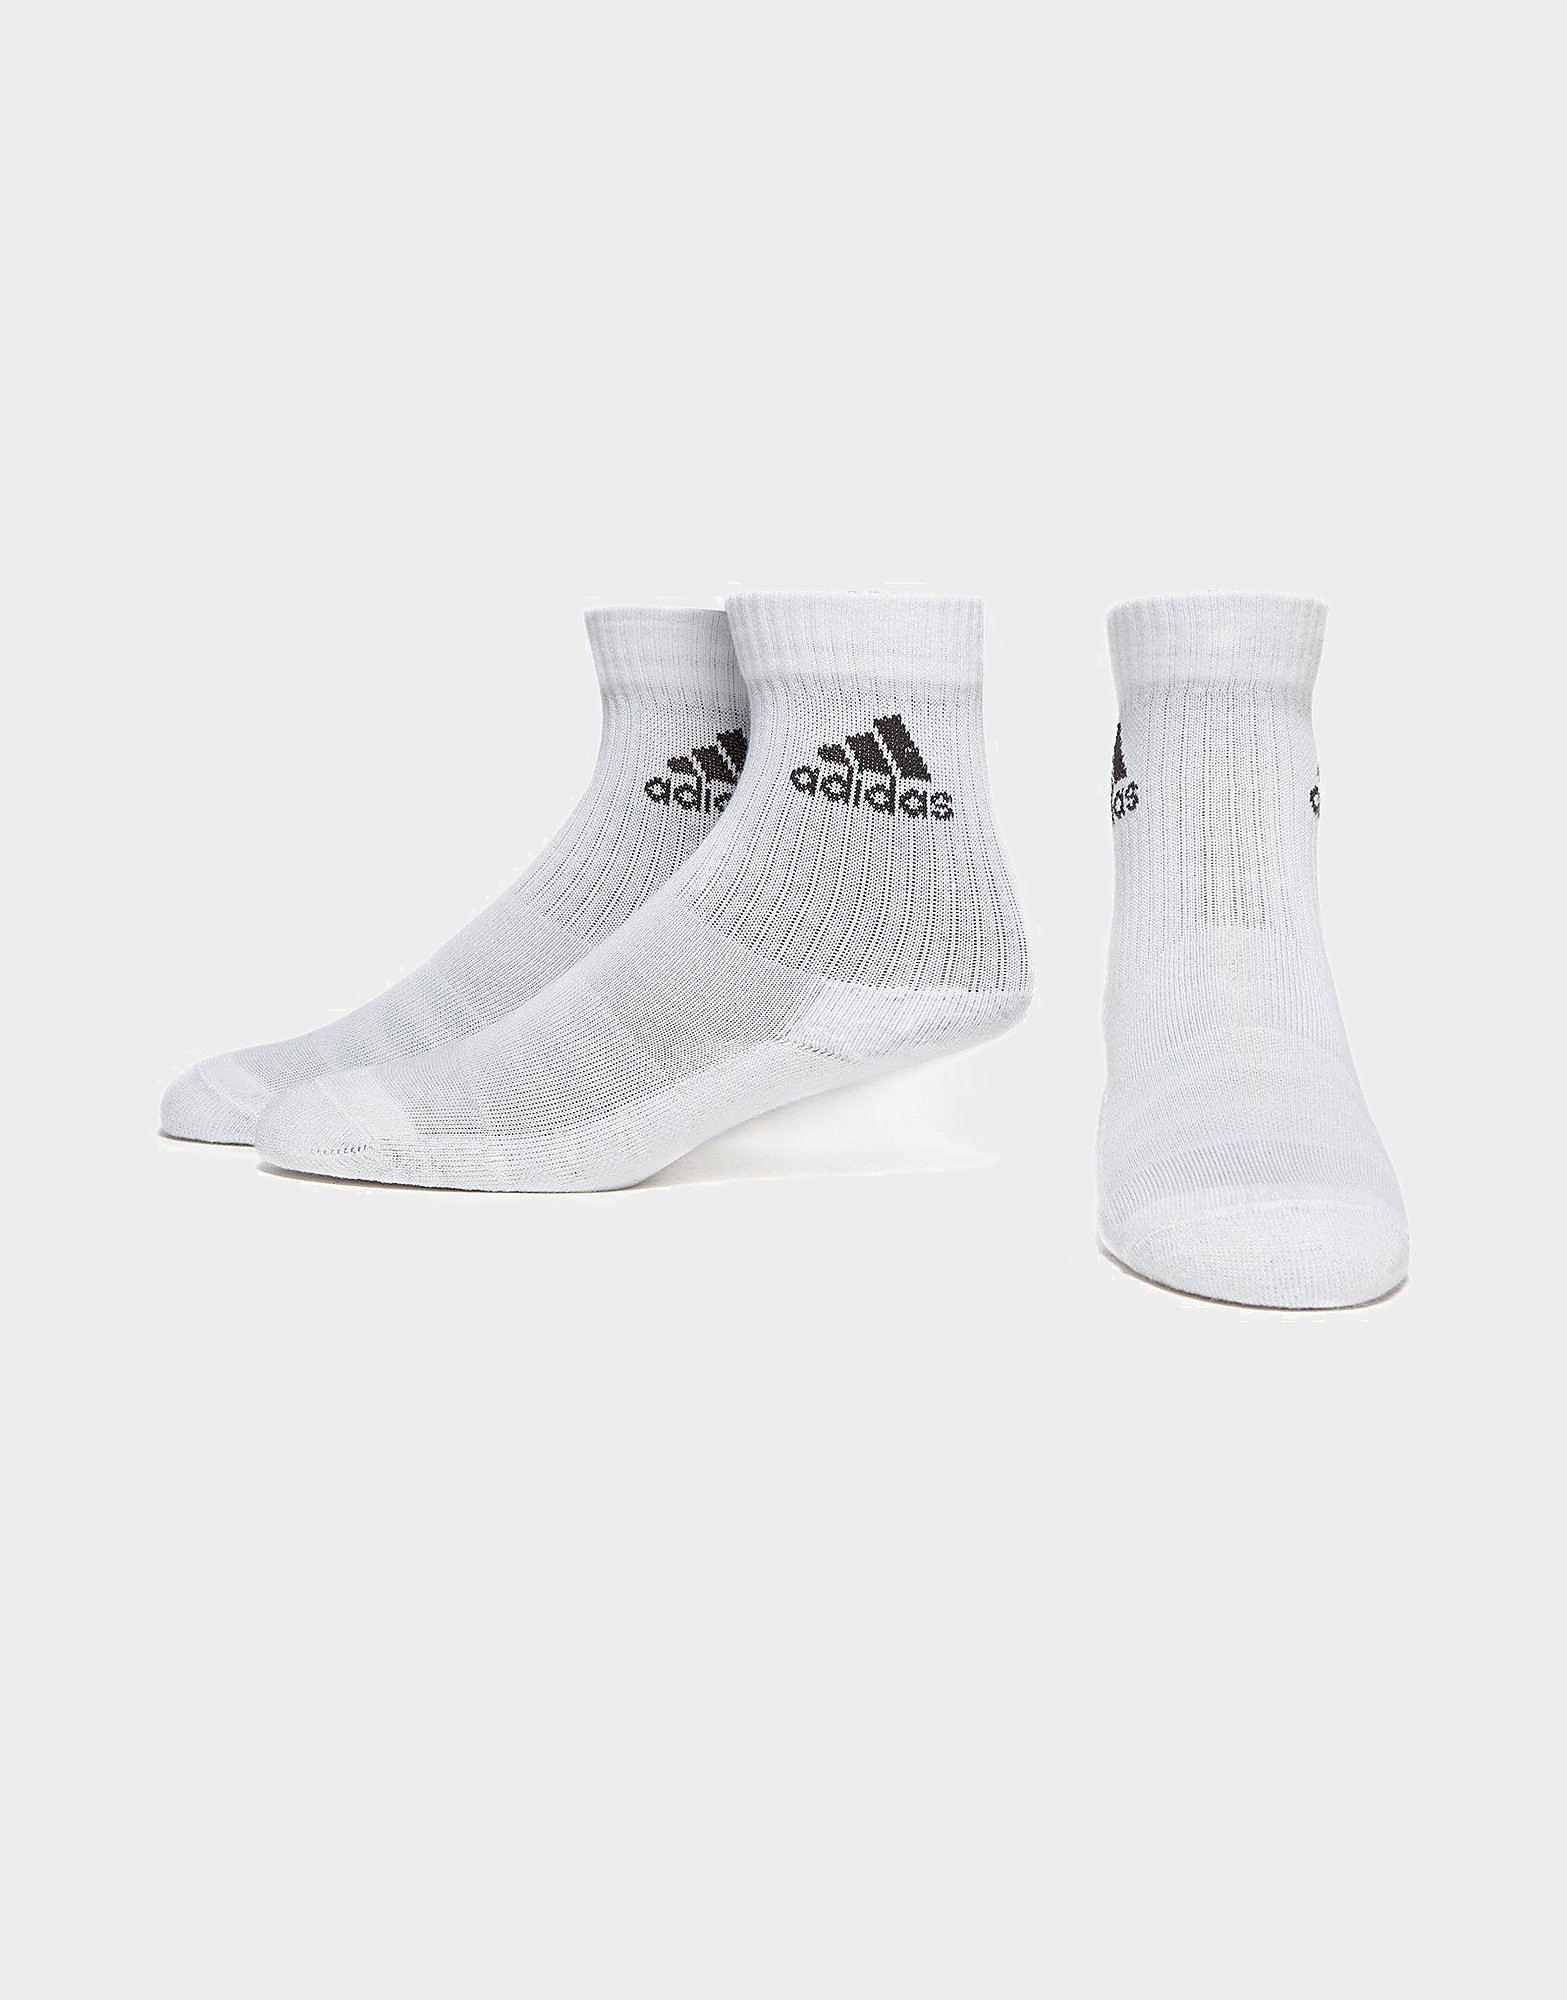 adidas 3 Stripe Performance Crew 3 Pack Socks